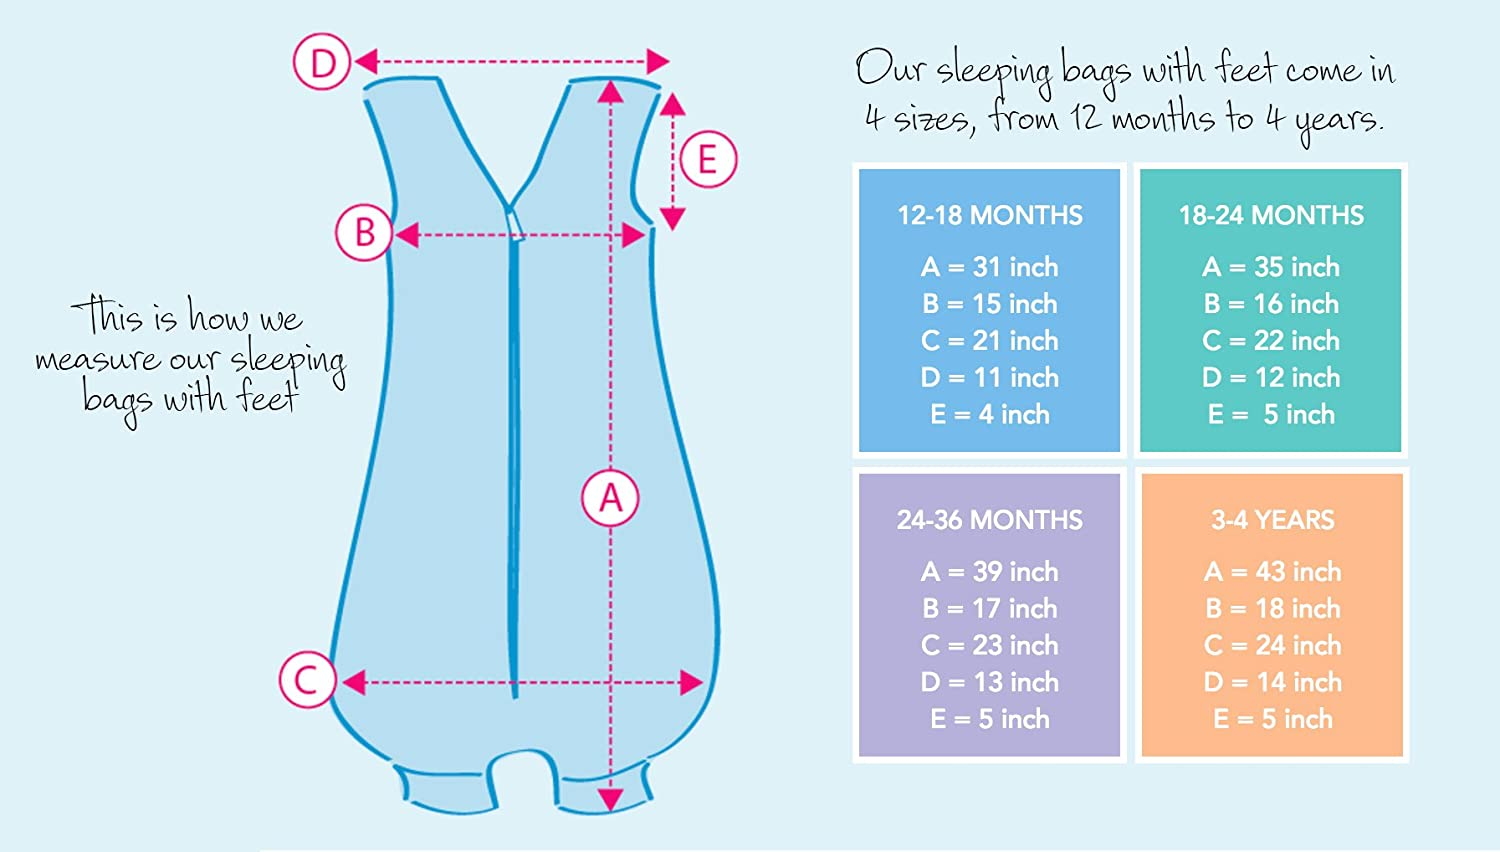 Amazon.com: SlumberSafe Summer Sleeping Bag with Feet Early Walker 0.5 Tog, Blue Stripes, 18-24 Months/35 inch: Baby